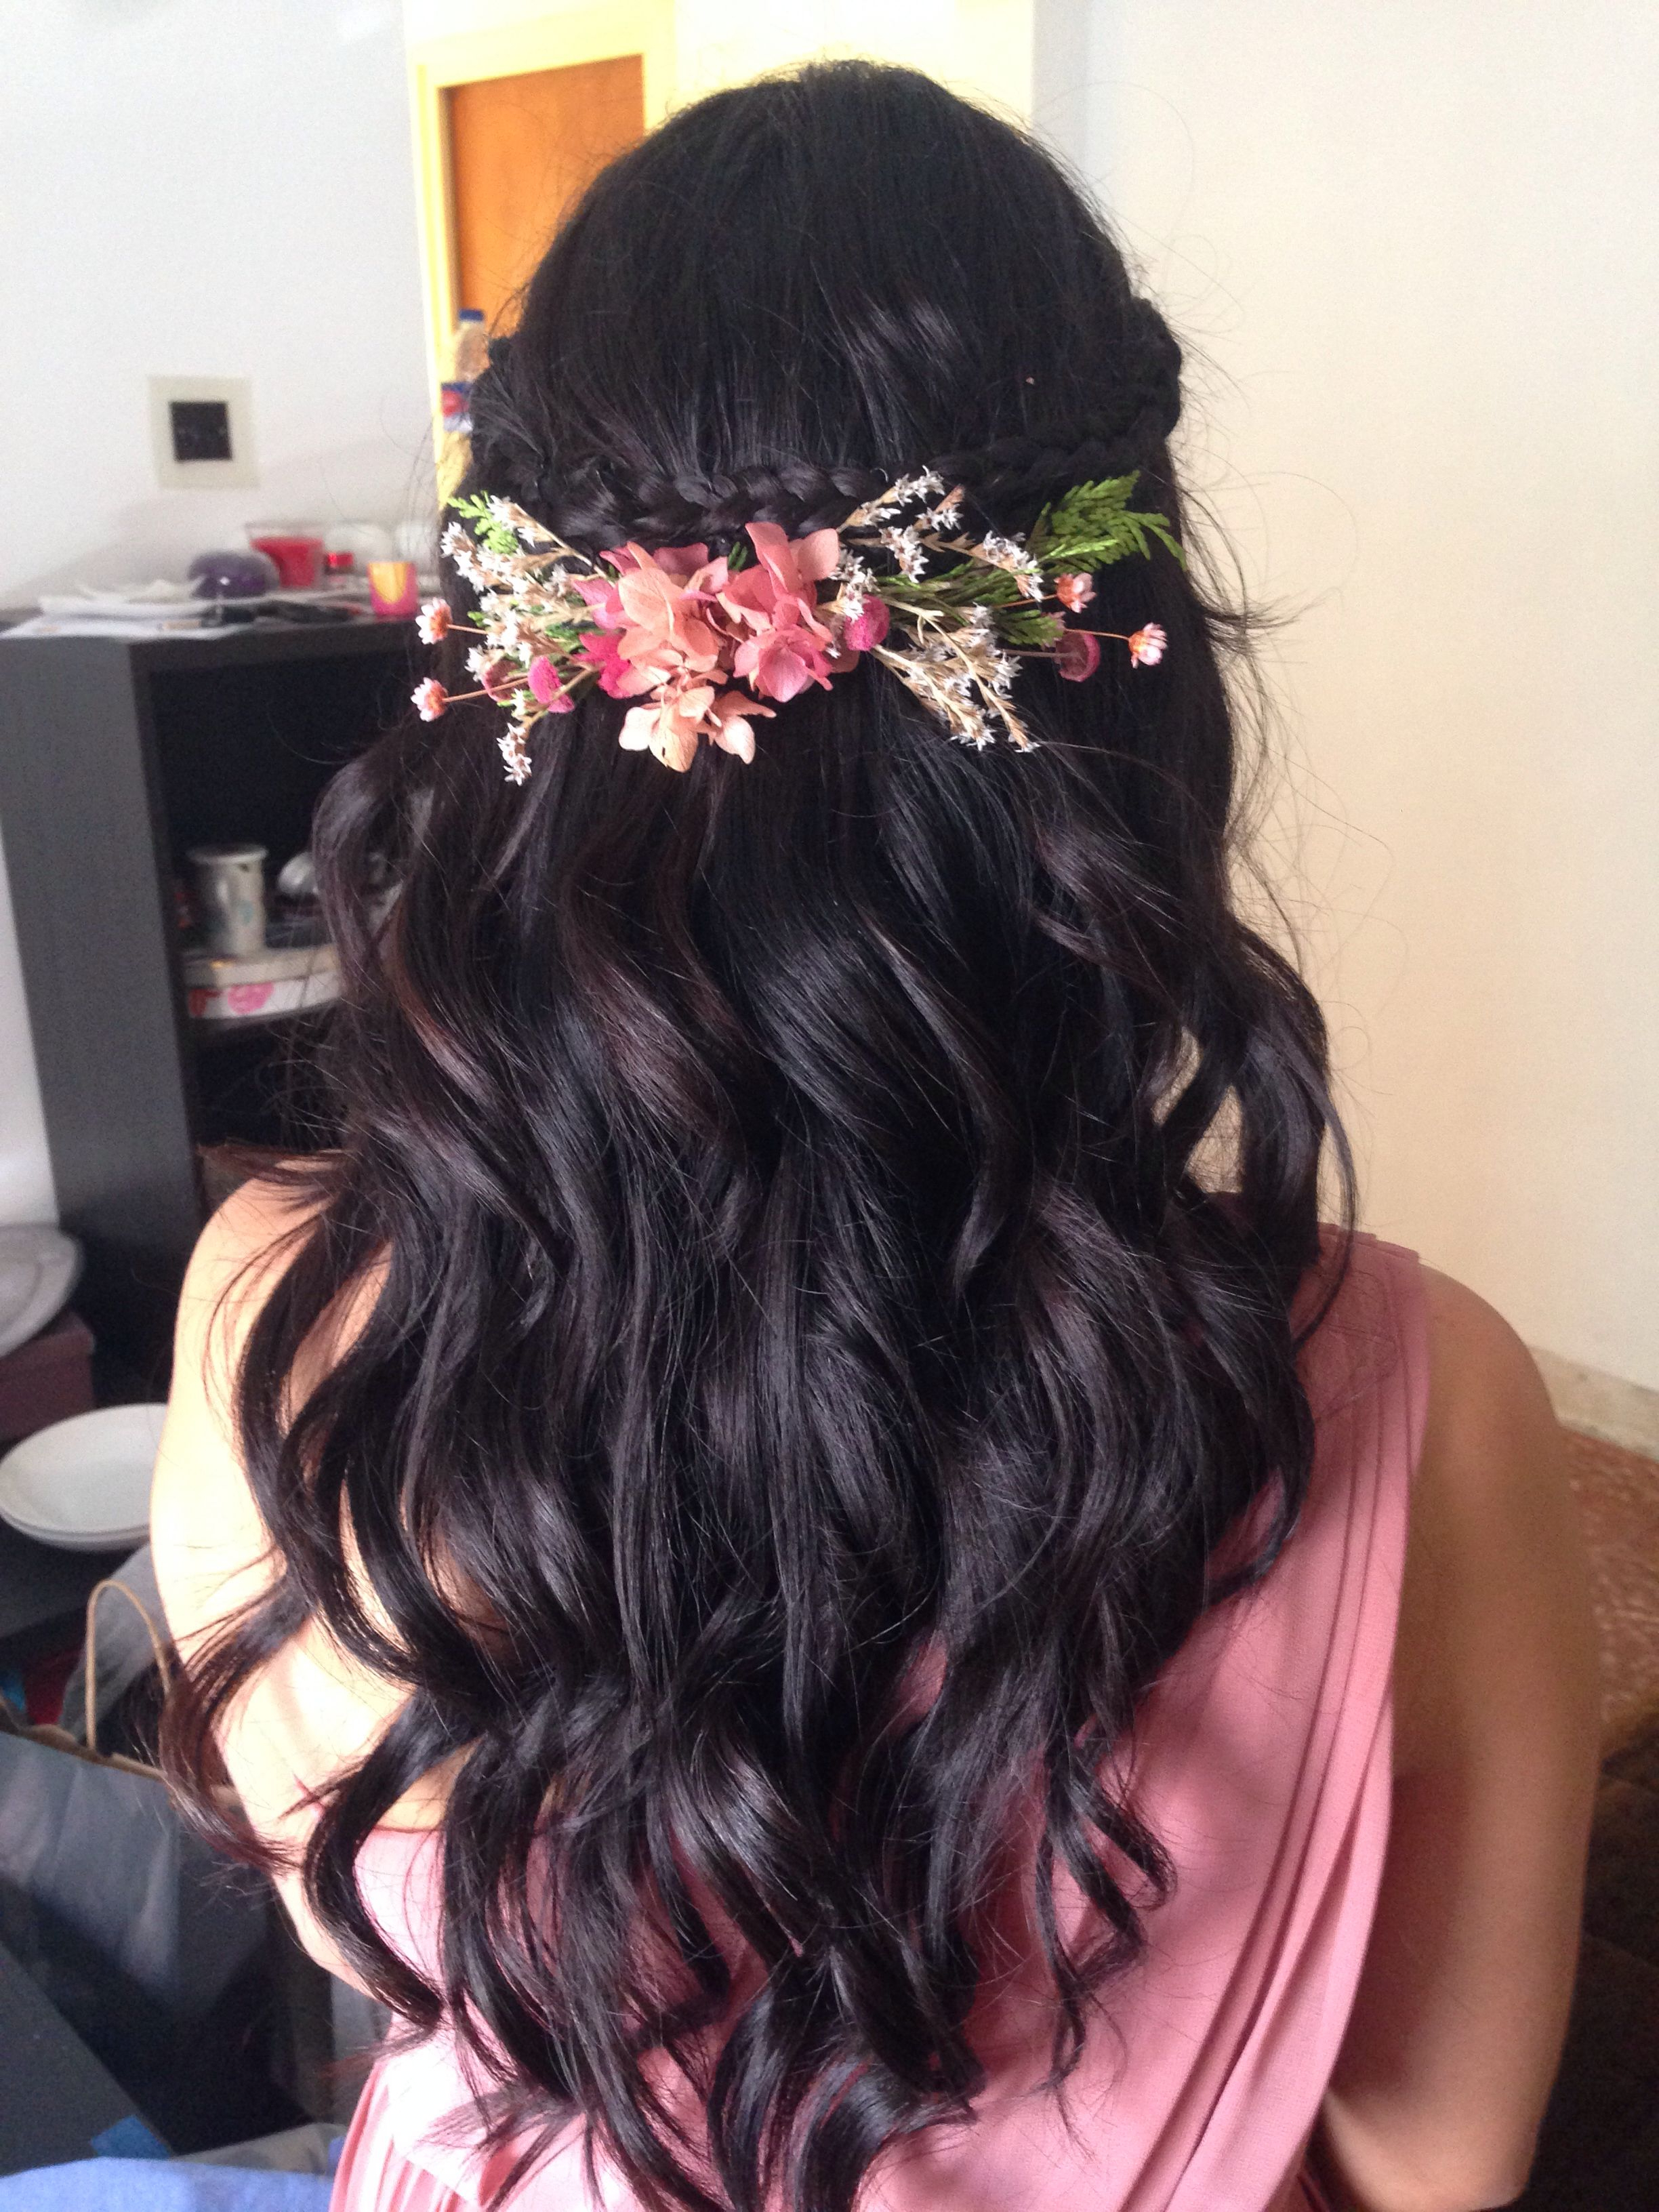 Curly Open Hair Adorned With Floral Hair Clip (View 6 of 20)